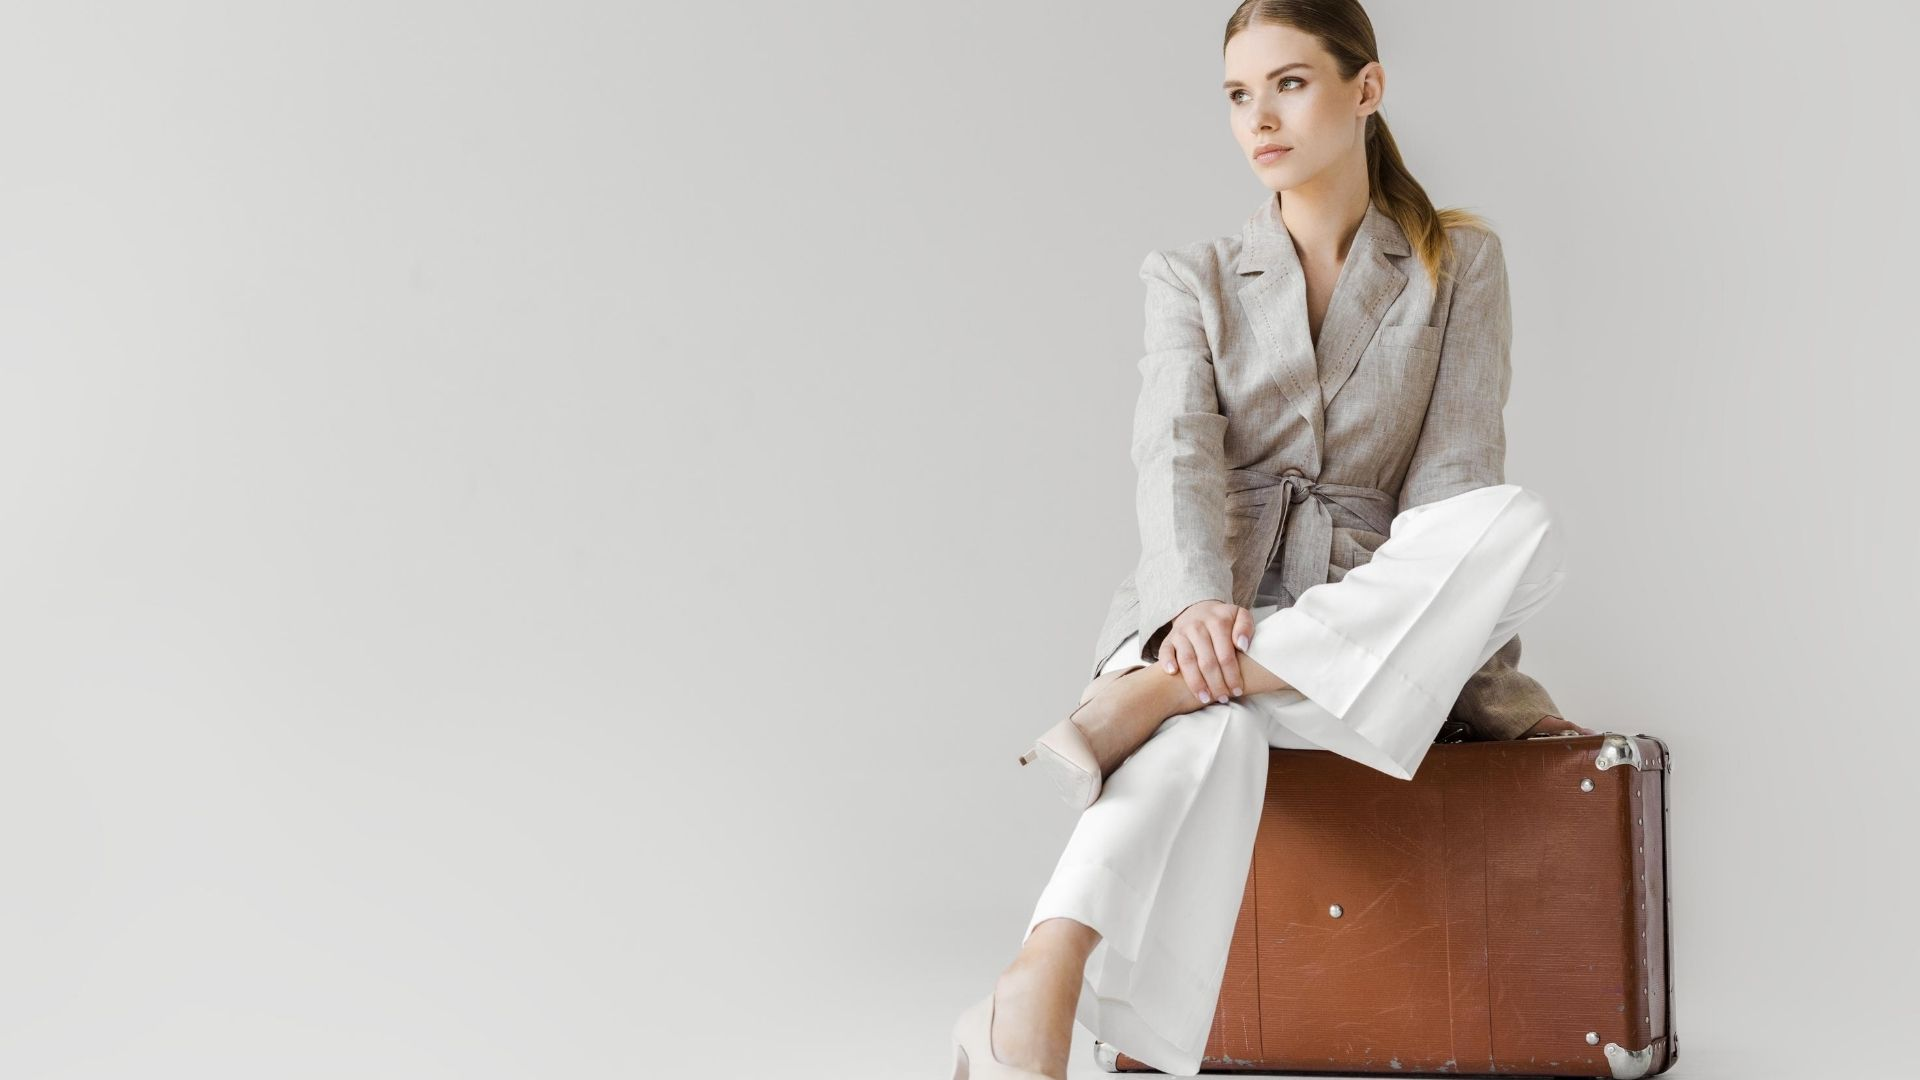 Woman wearing a linen jacket sits on a battered suitcase.